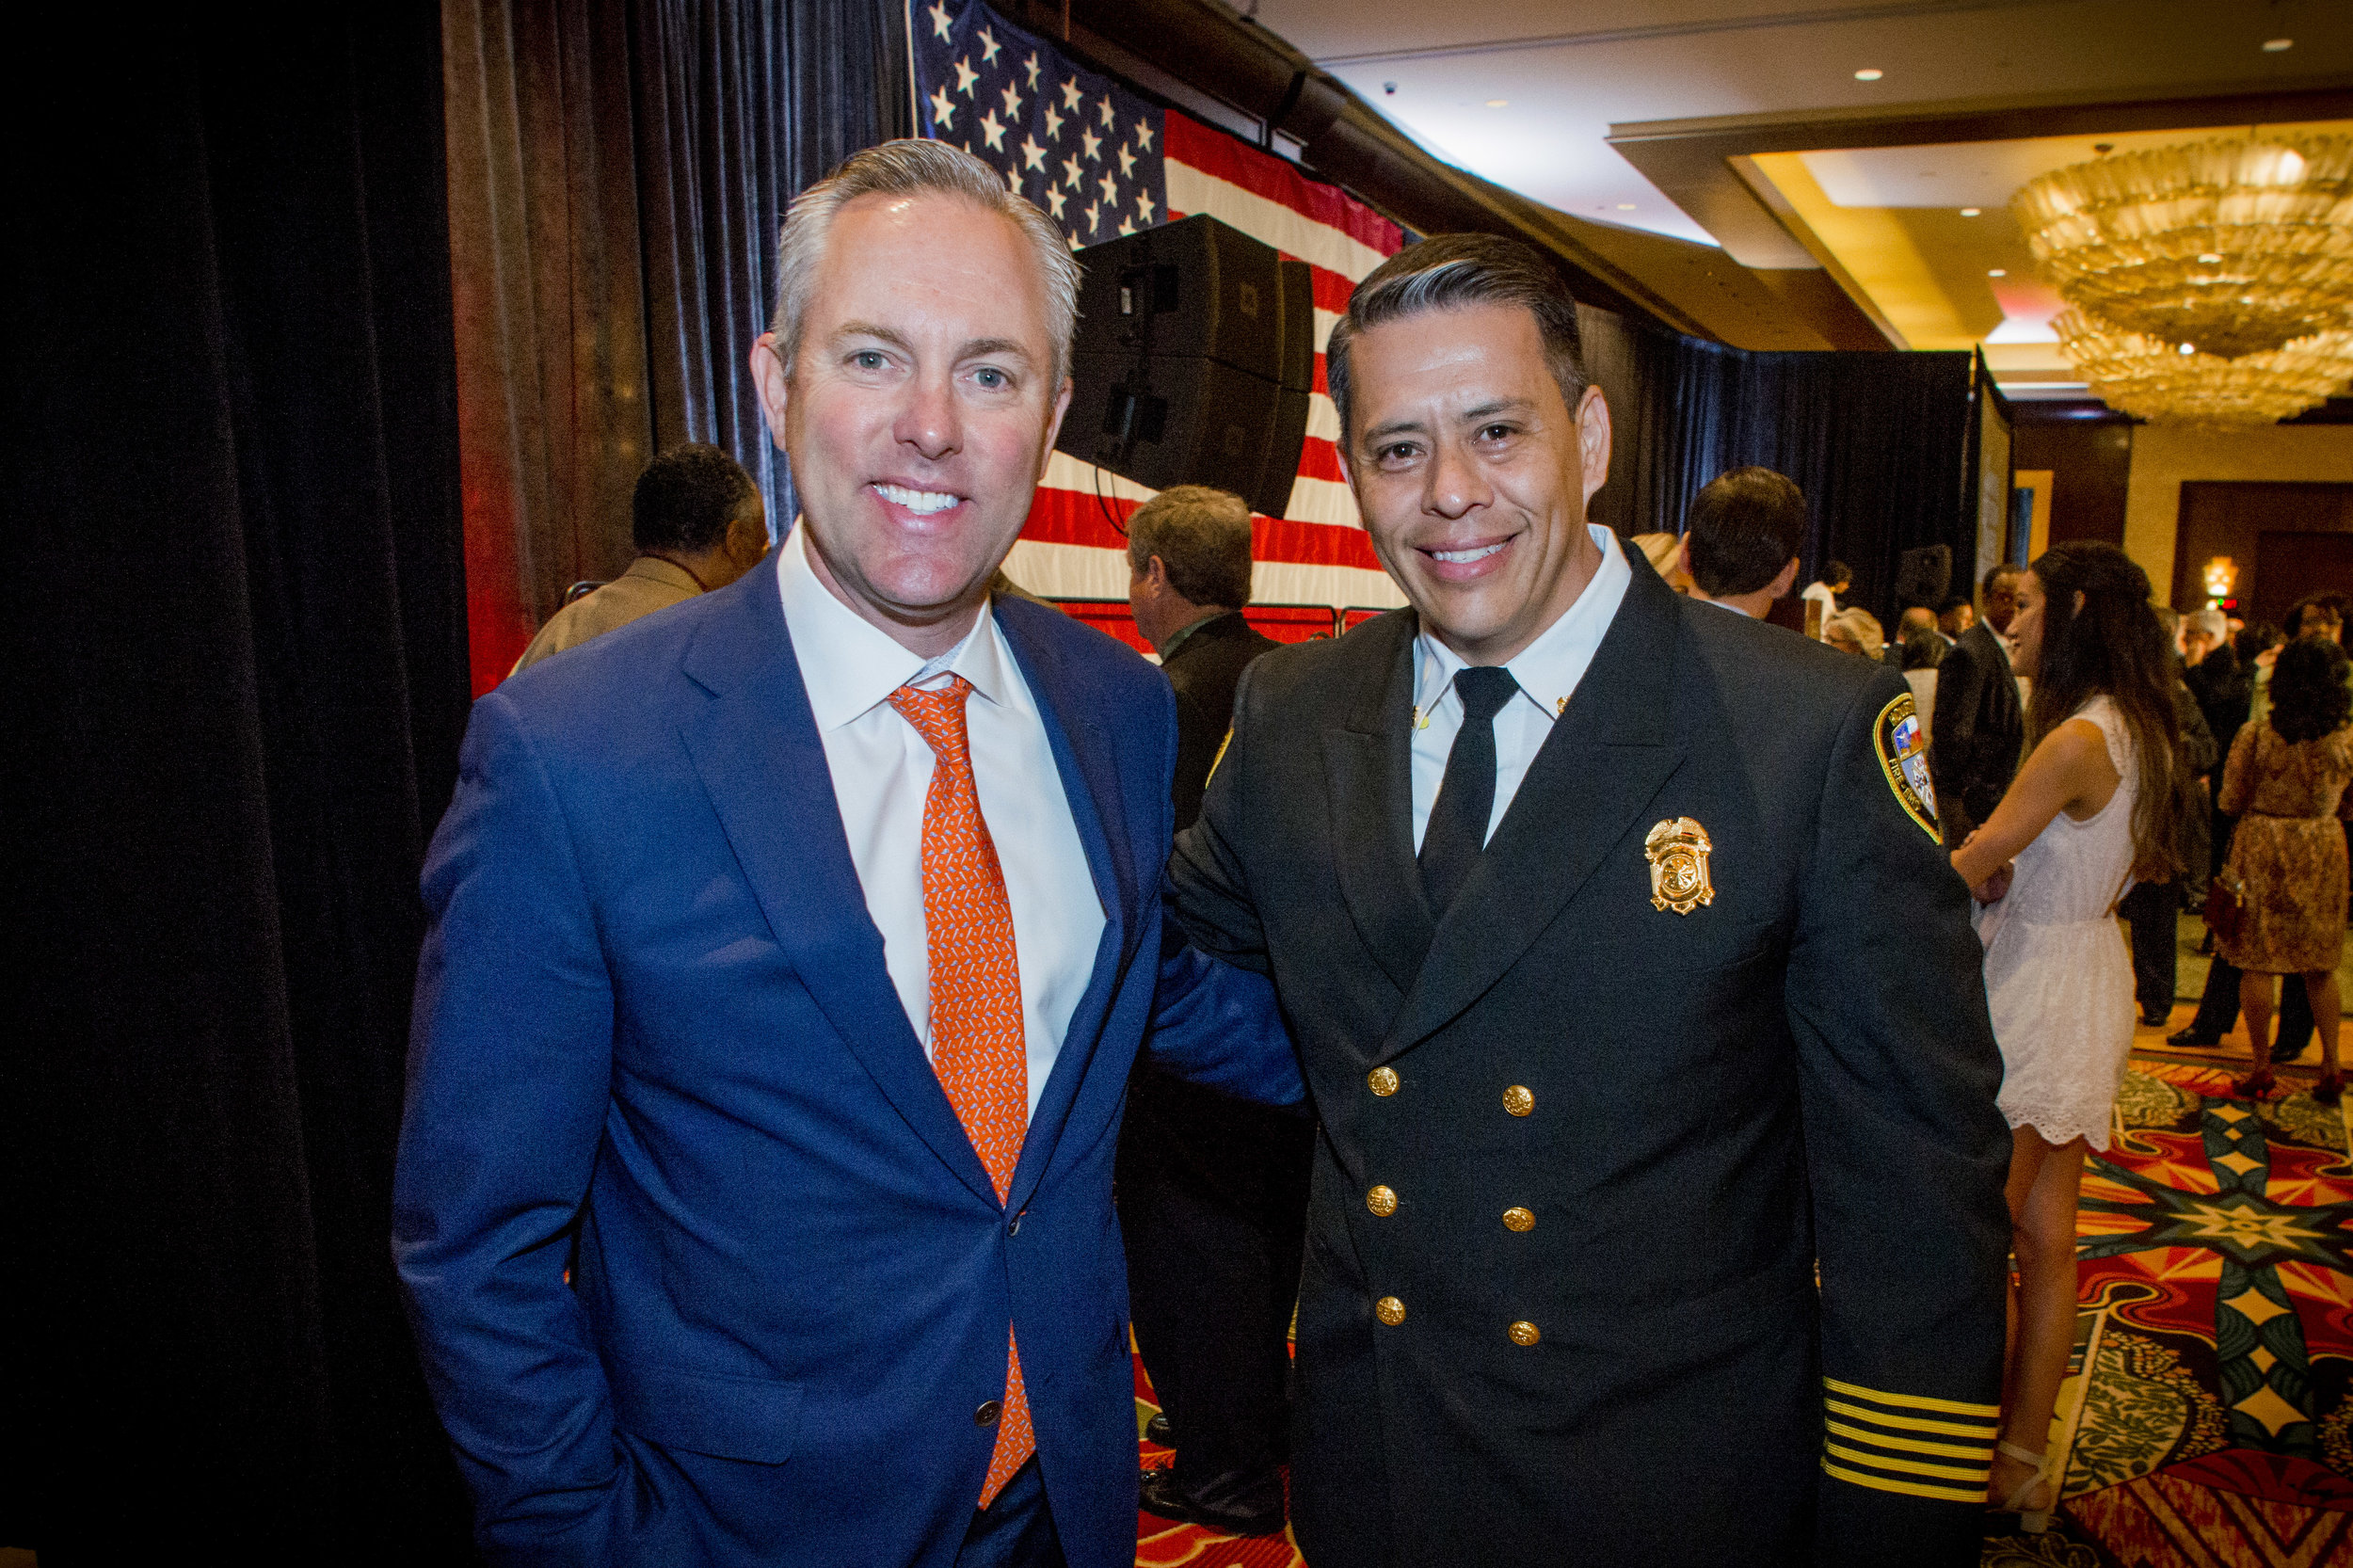 - Reid Ryan, President of Houston Astros with Cpt. Samuel Pena of Houston Fire Dept. at Prayer Breakfast 2018